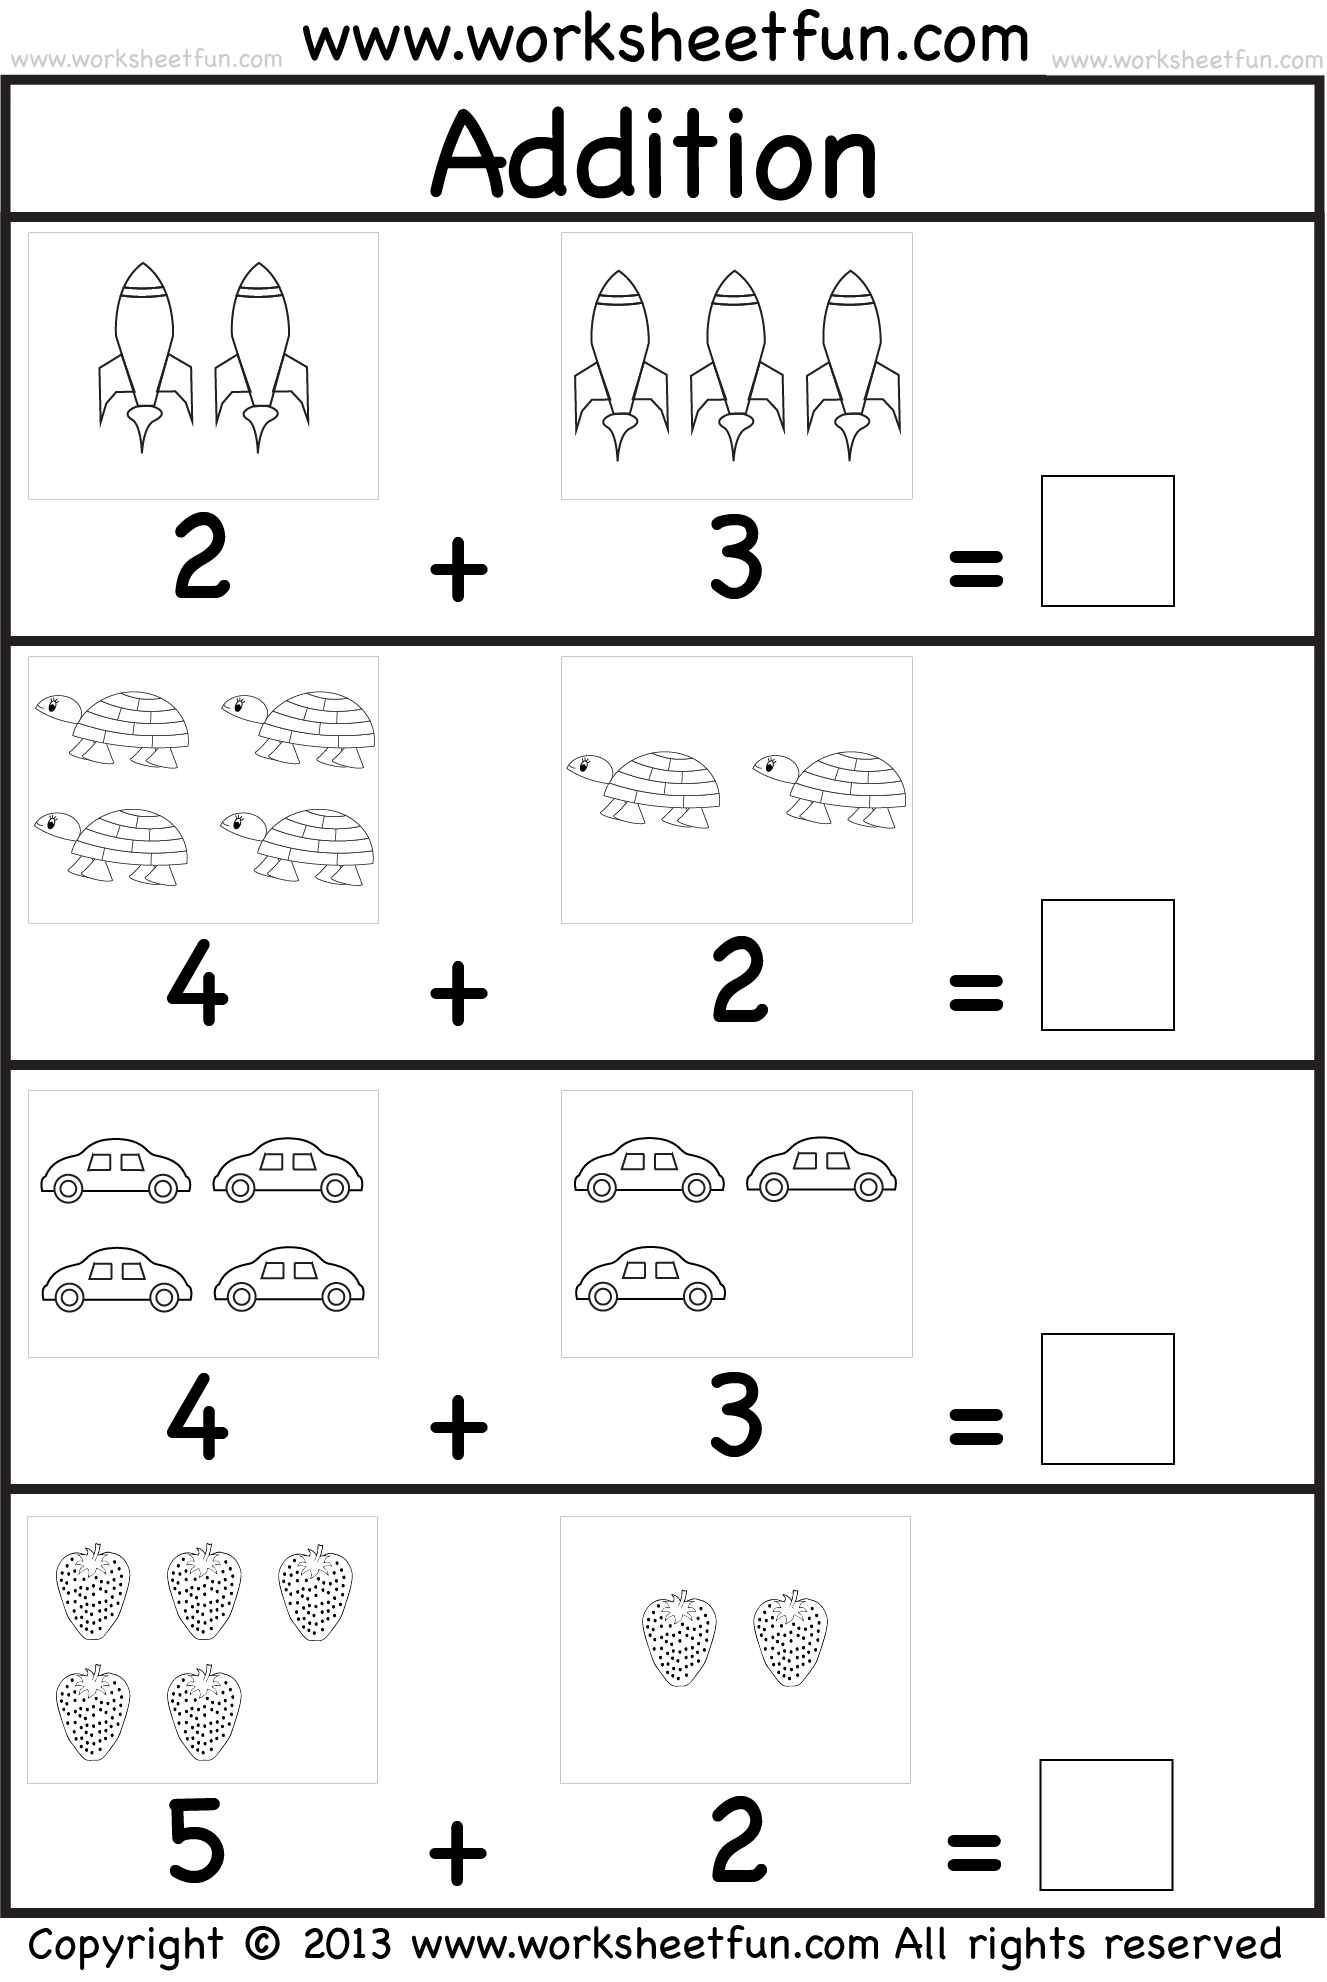 math worksheet : 1000 images about printables on pinterest  sight words  : Maths For Kindergarten Free Printable Worksheets